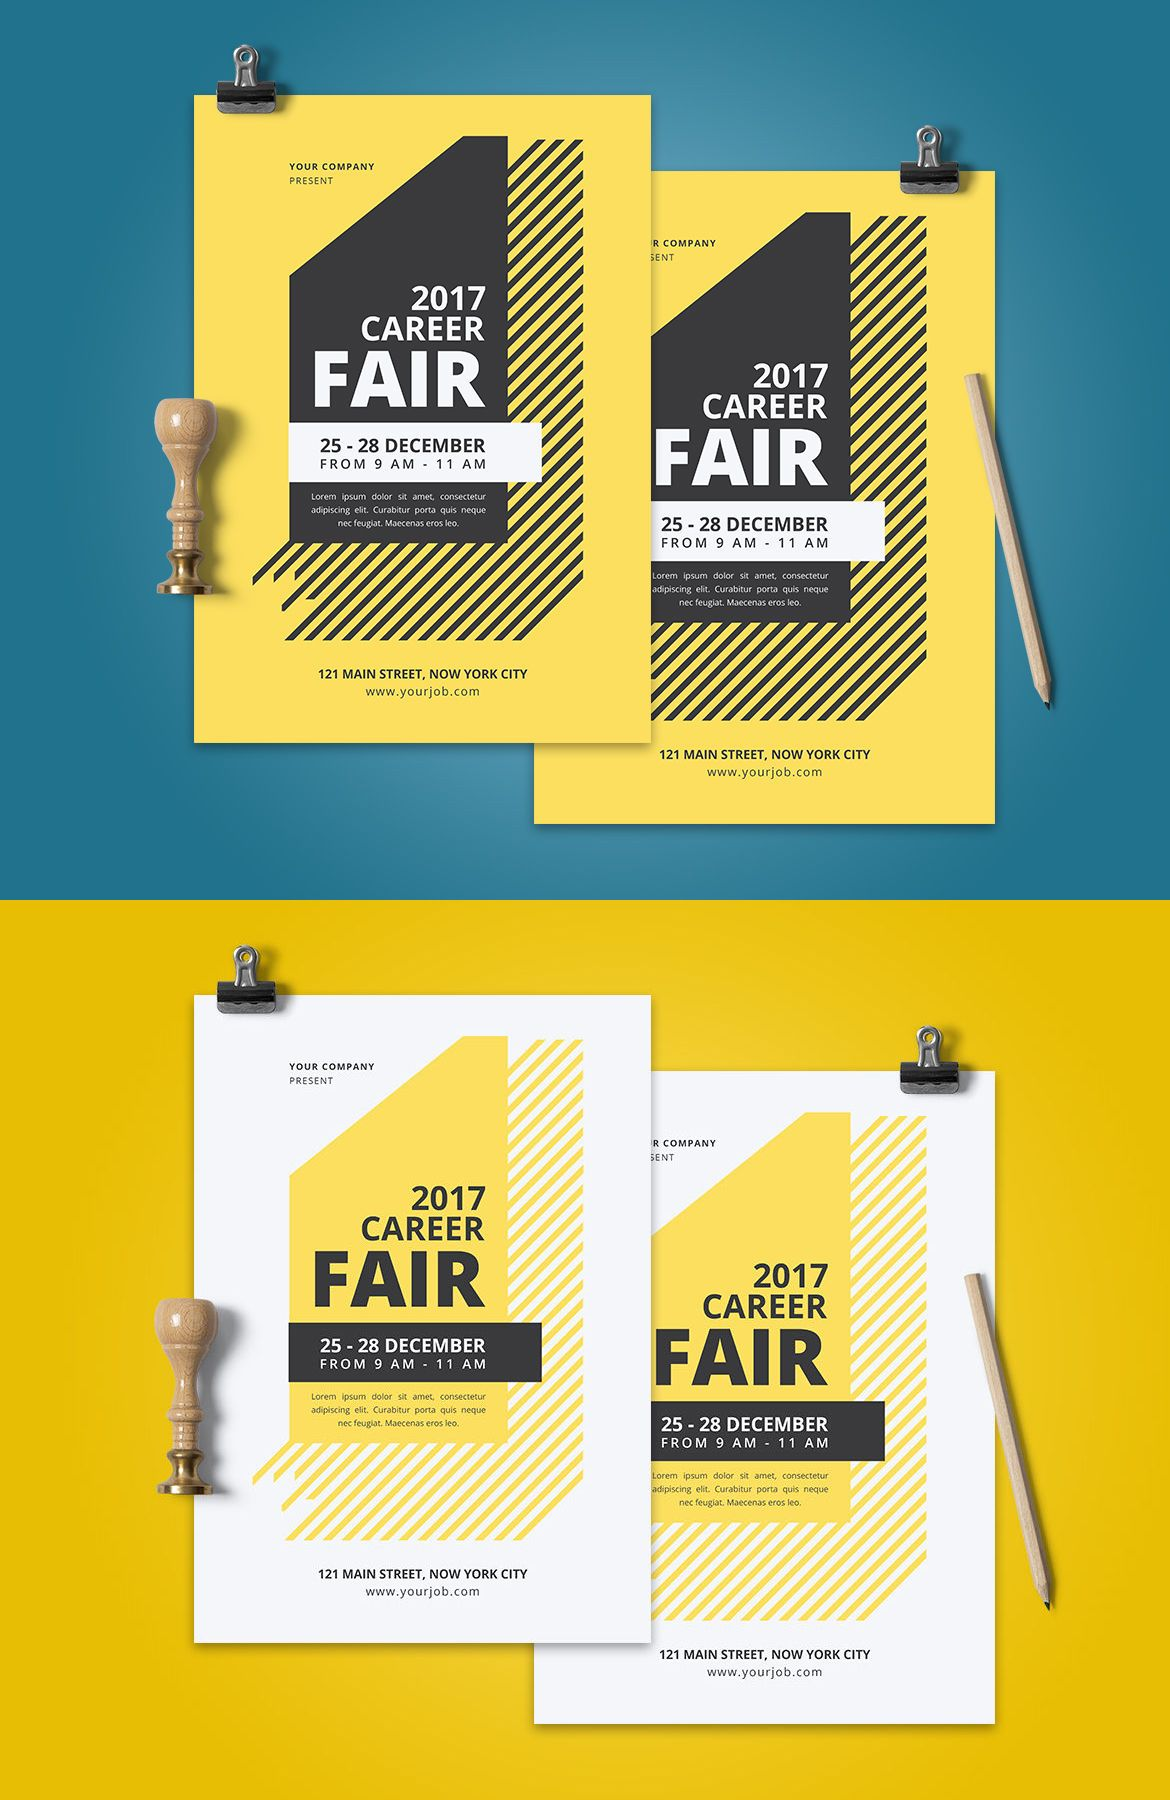 Career Fair Flyer Template AI, PSD | Flyer Templates | Pinterest ...